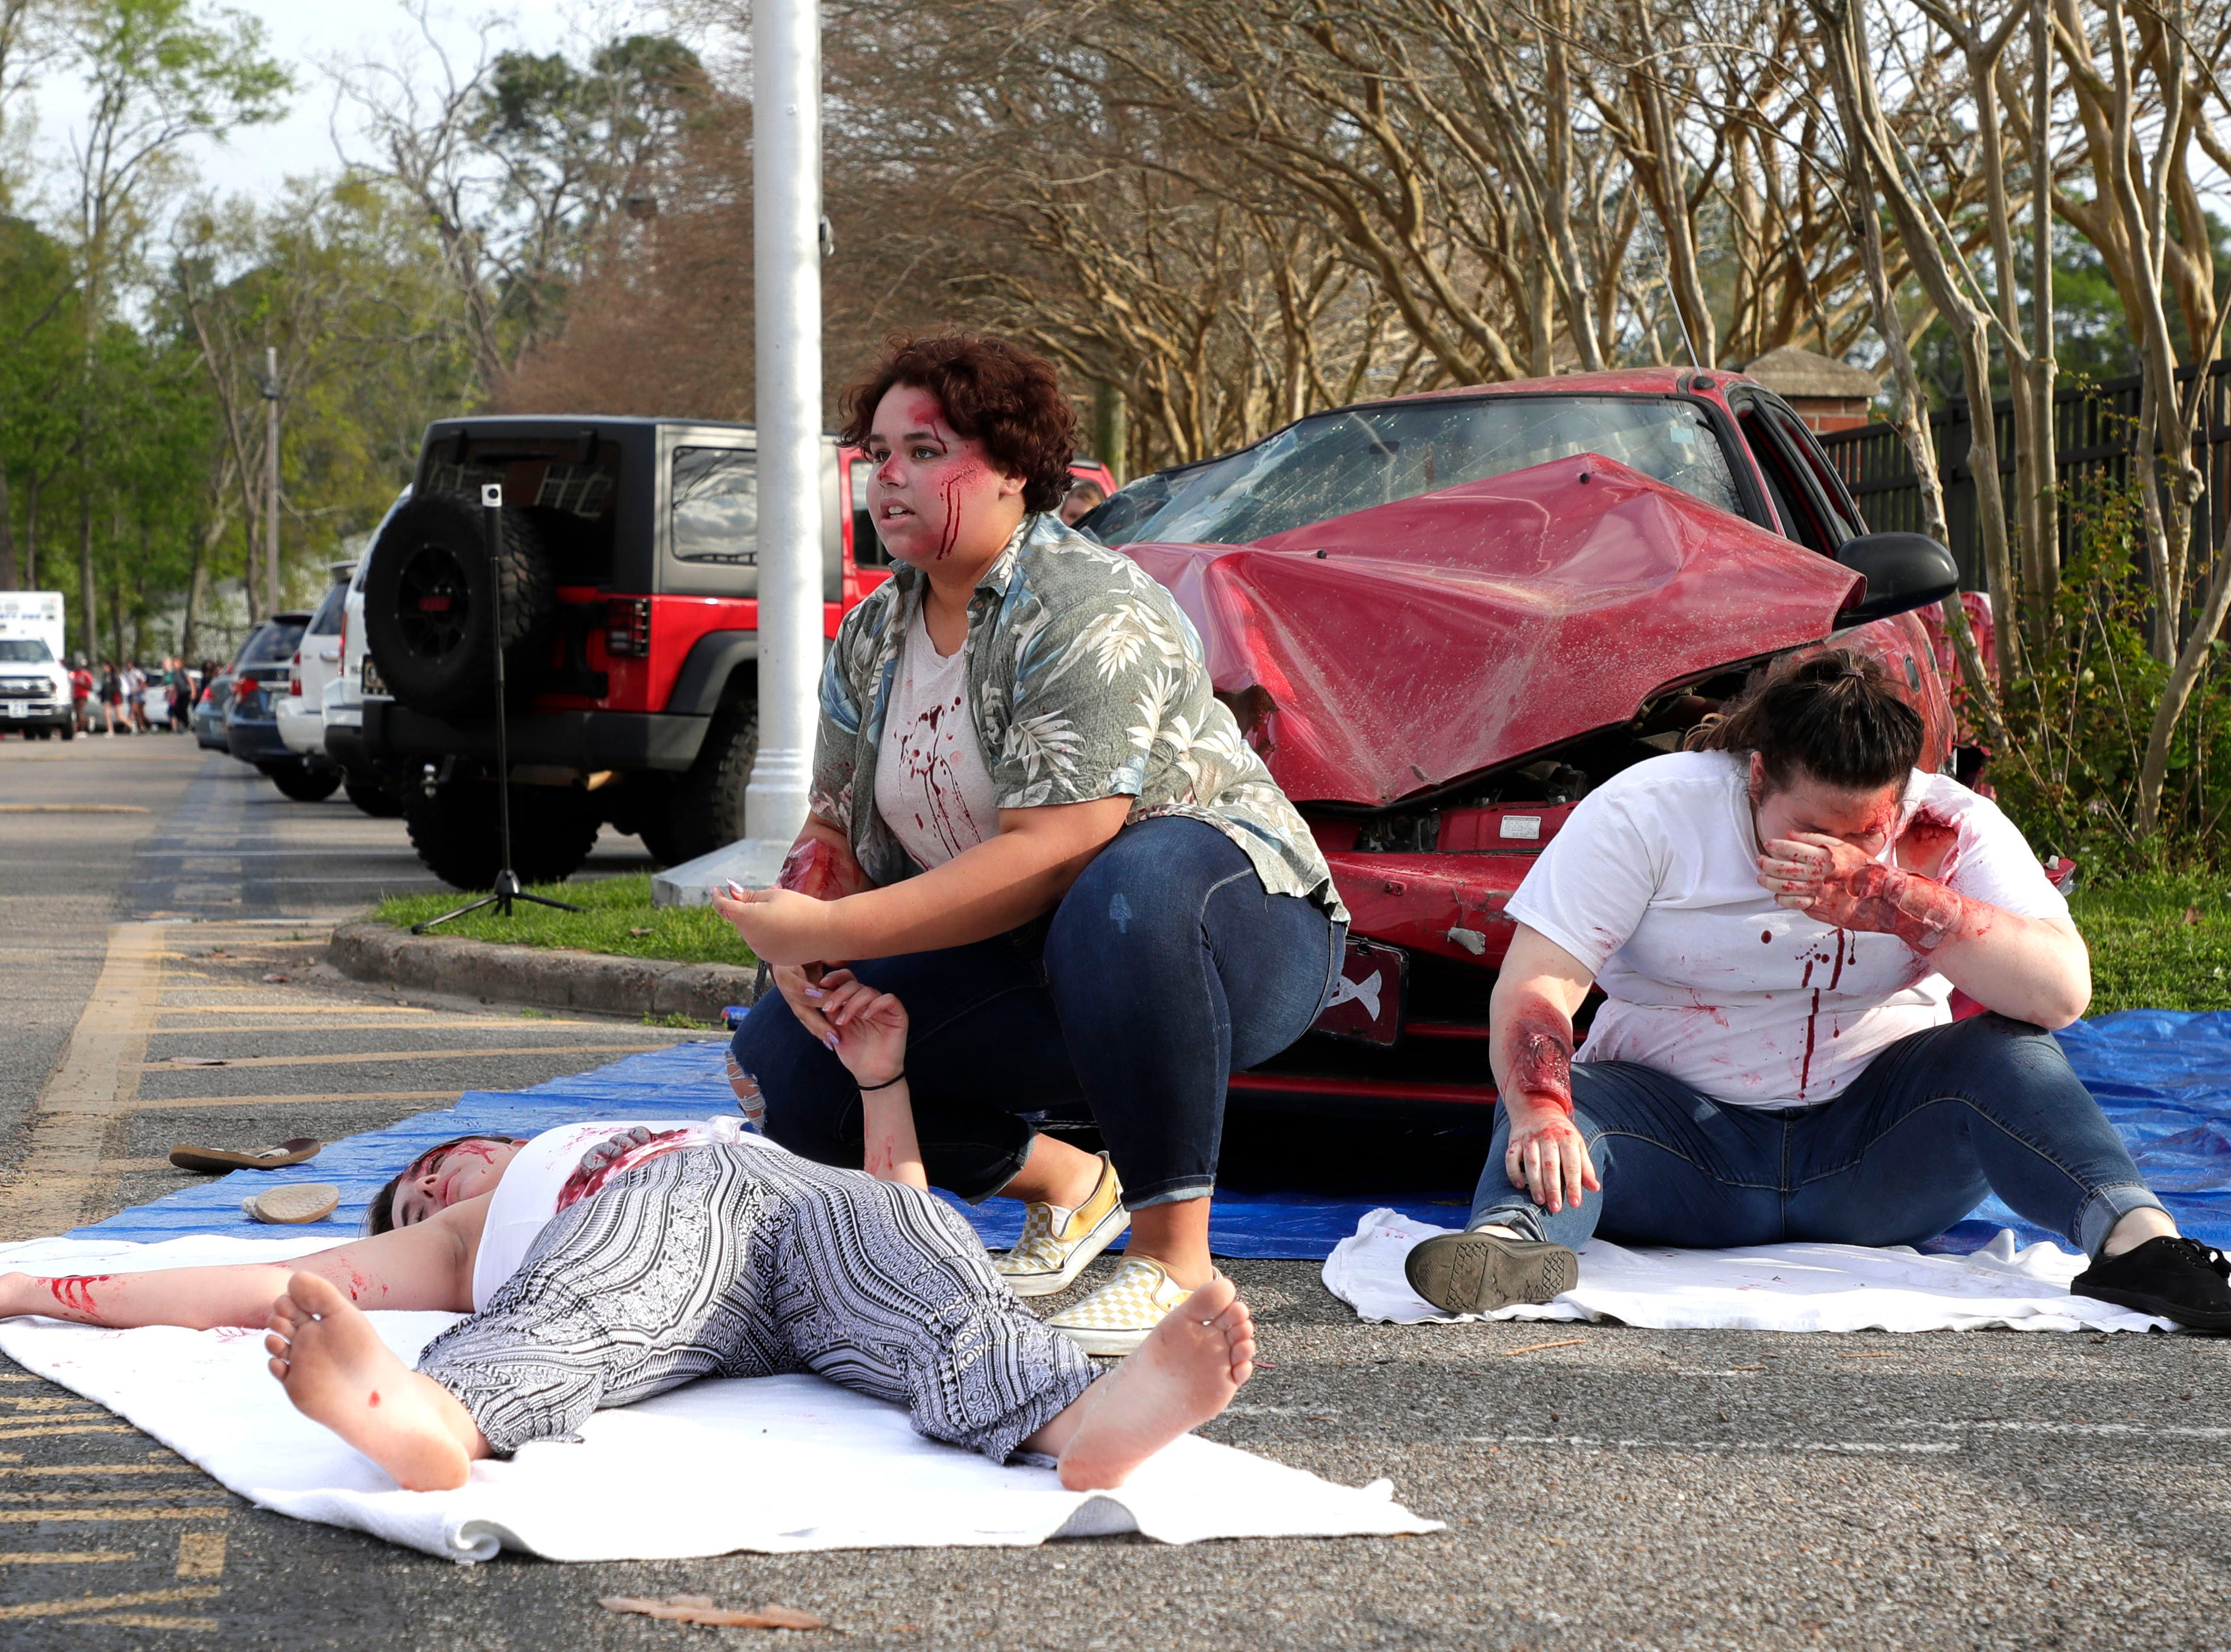 Mia Ford-Green, center, checks Christina Huettel's, left, pulse while Caitlyn Burke hyperventilates. The three teens portray teens involved in a drinking and driving accident. Leon High School partners with the county safety officials to give a simulation on the consequences of drunk driving before the students leave for spring break Friday, March 15, 2019.